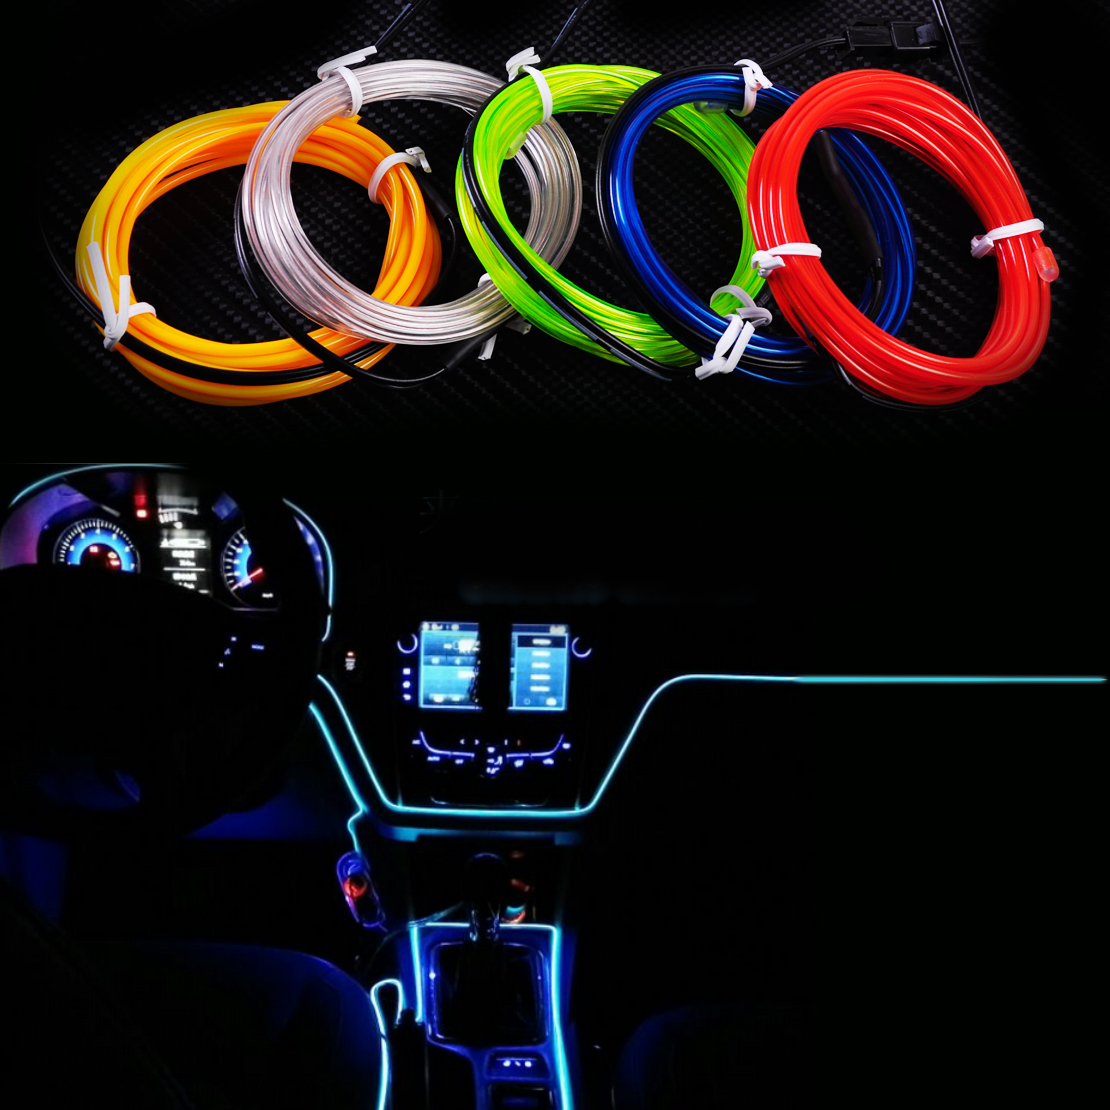 new 2m el wire flexible led neon strip cold light strip rope tape 12v car interior decor. Black Bedroom Furniture Sets. Home Design Ideas